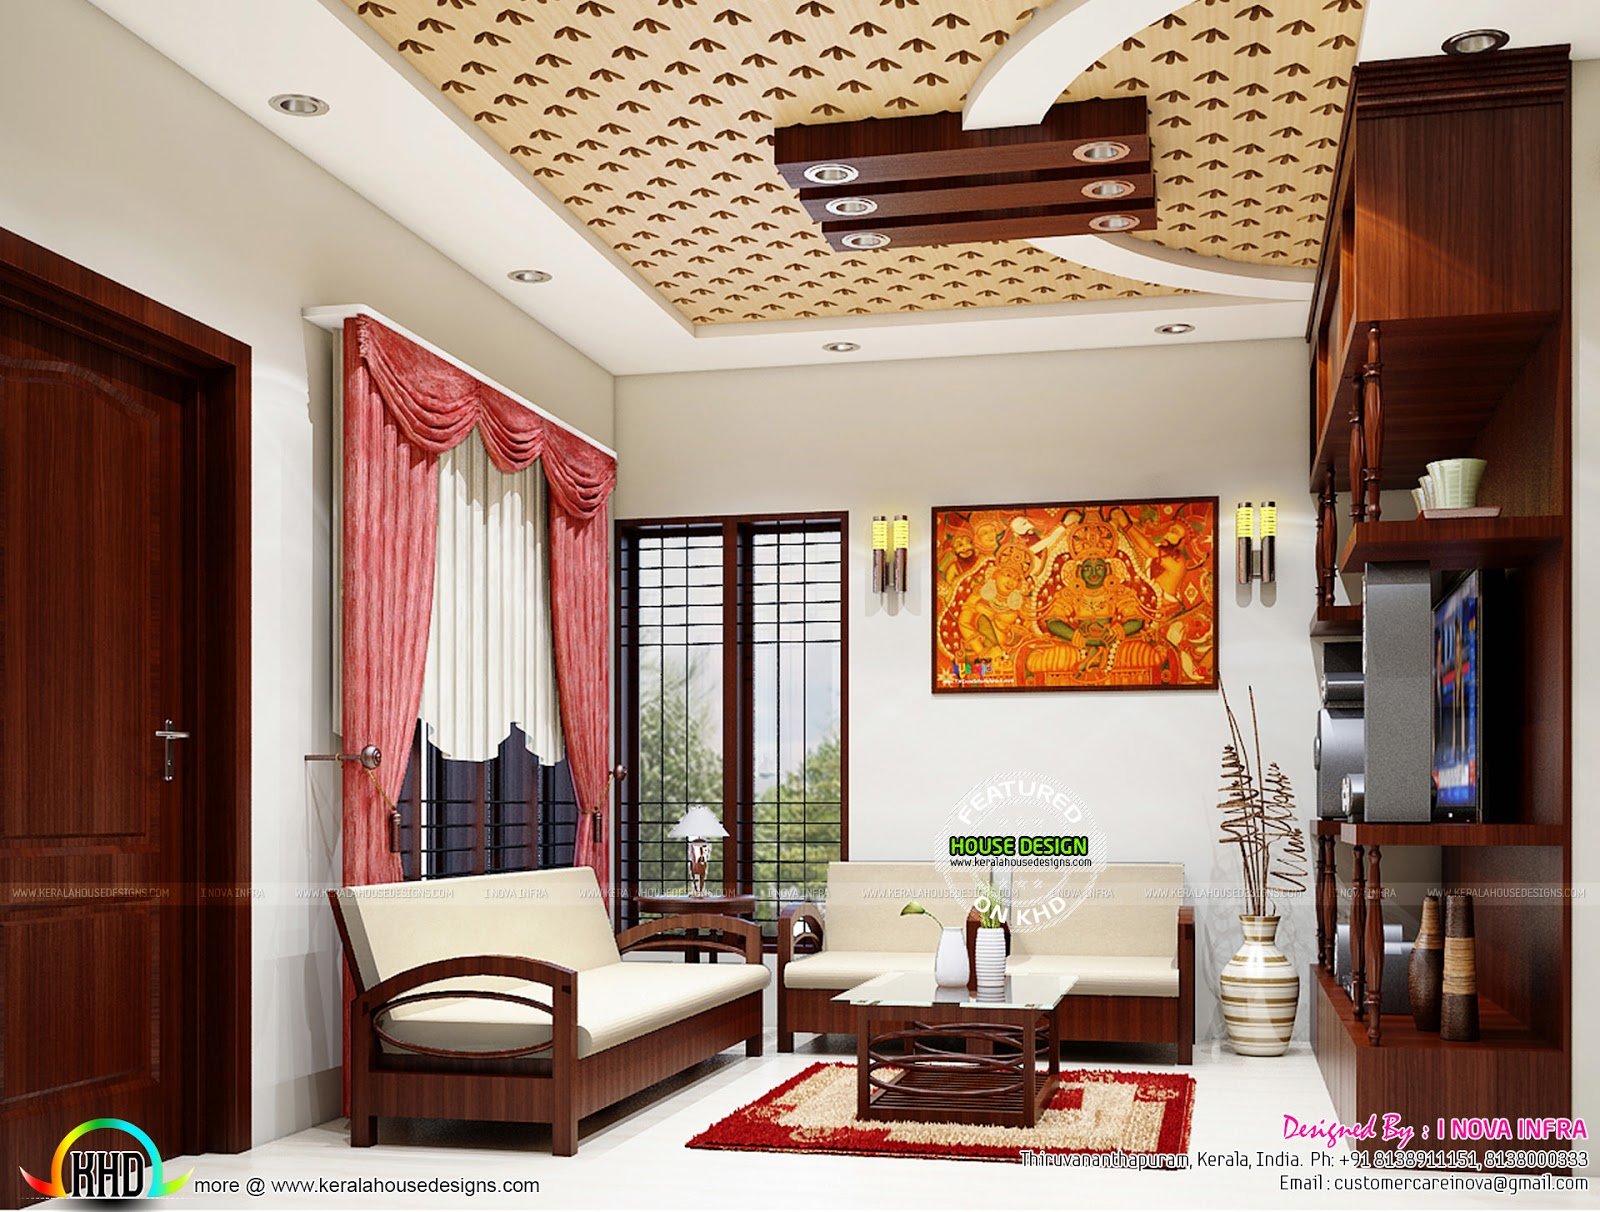 Kerala traditional interiors kerala home design and for Interior design living room